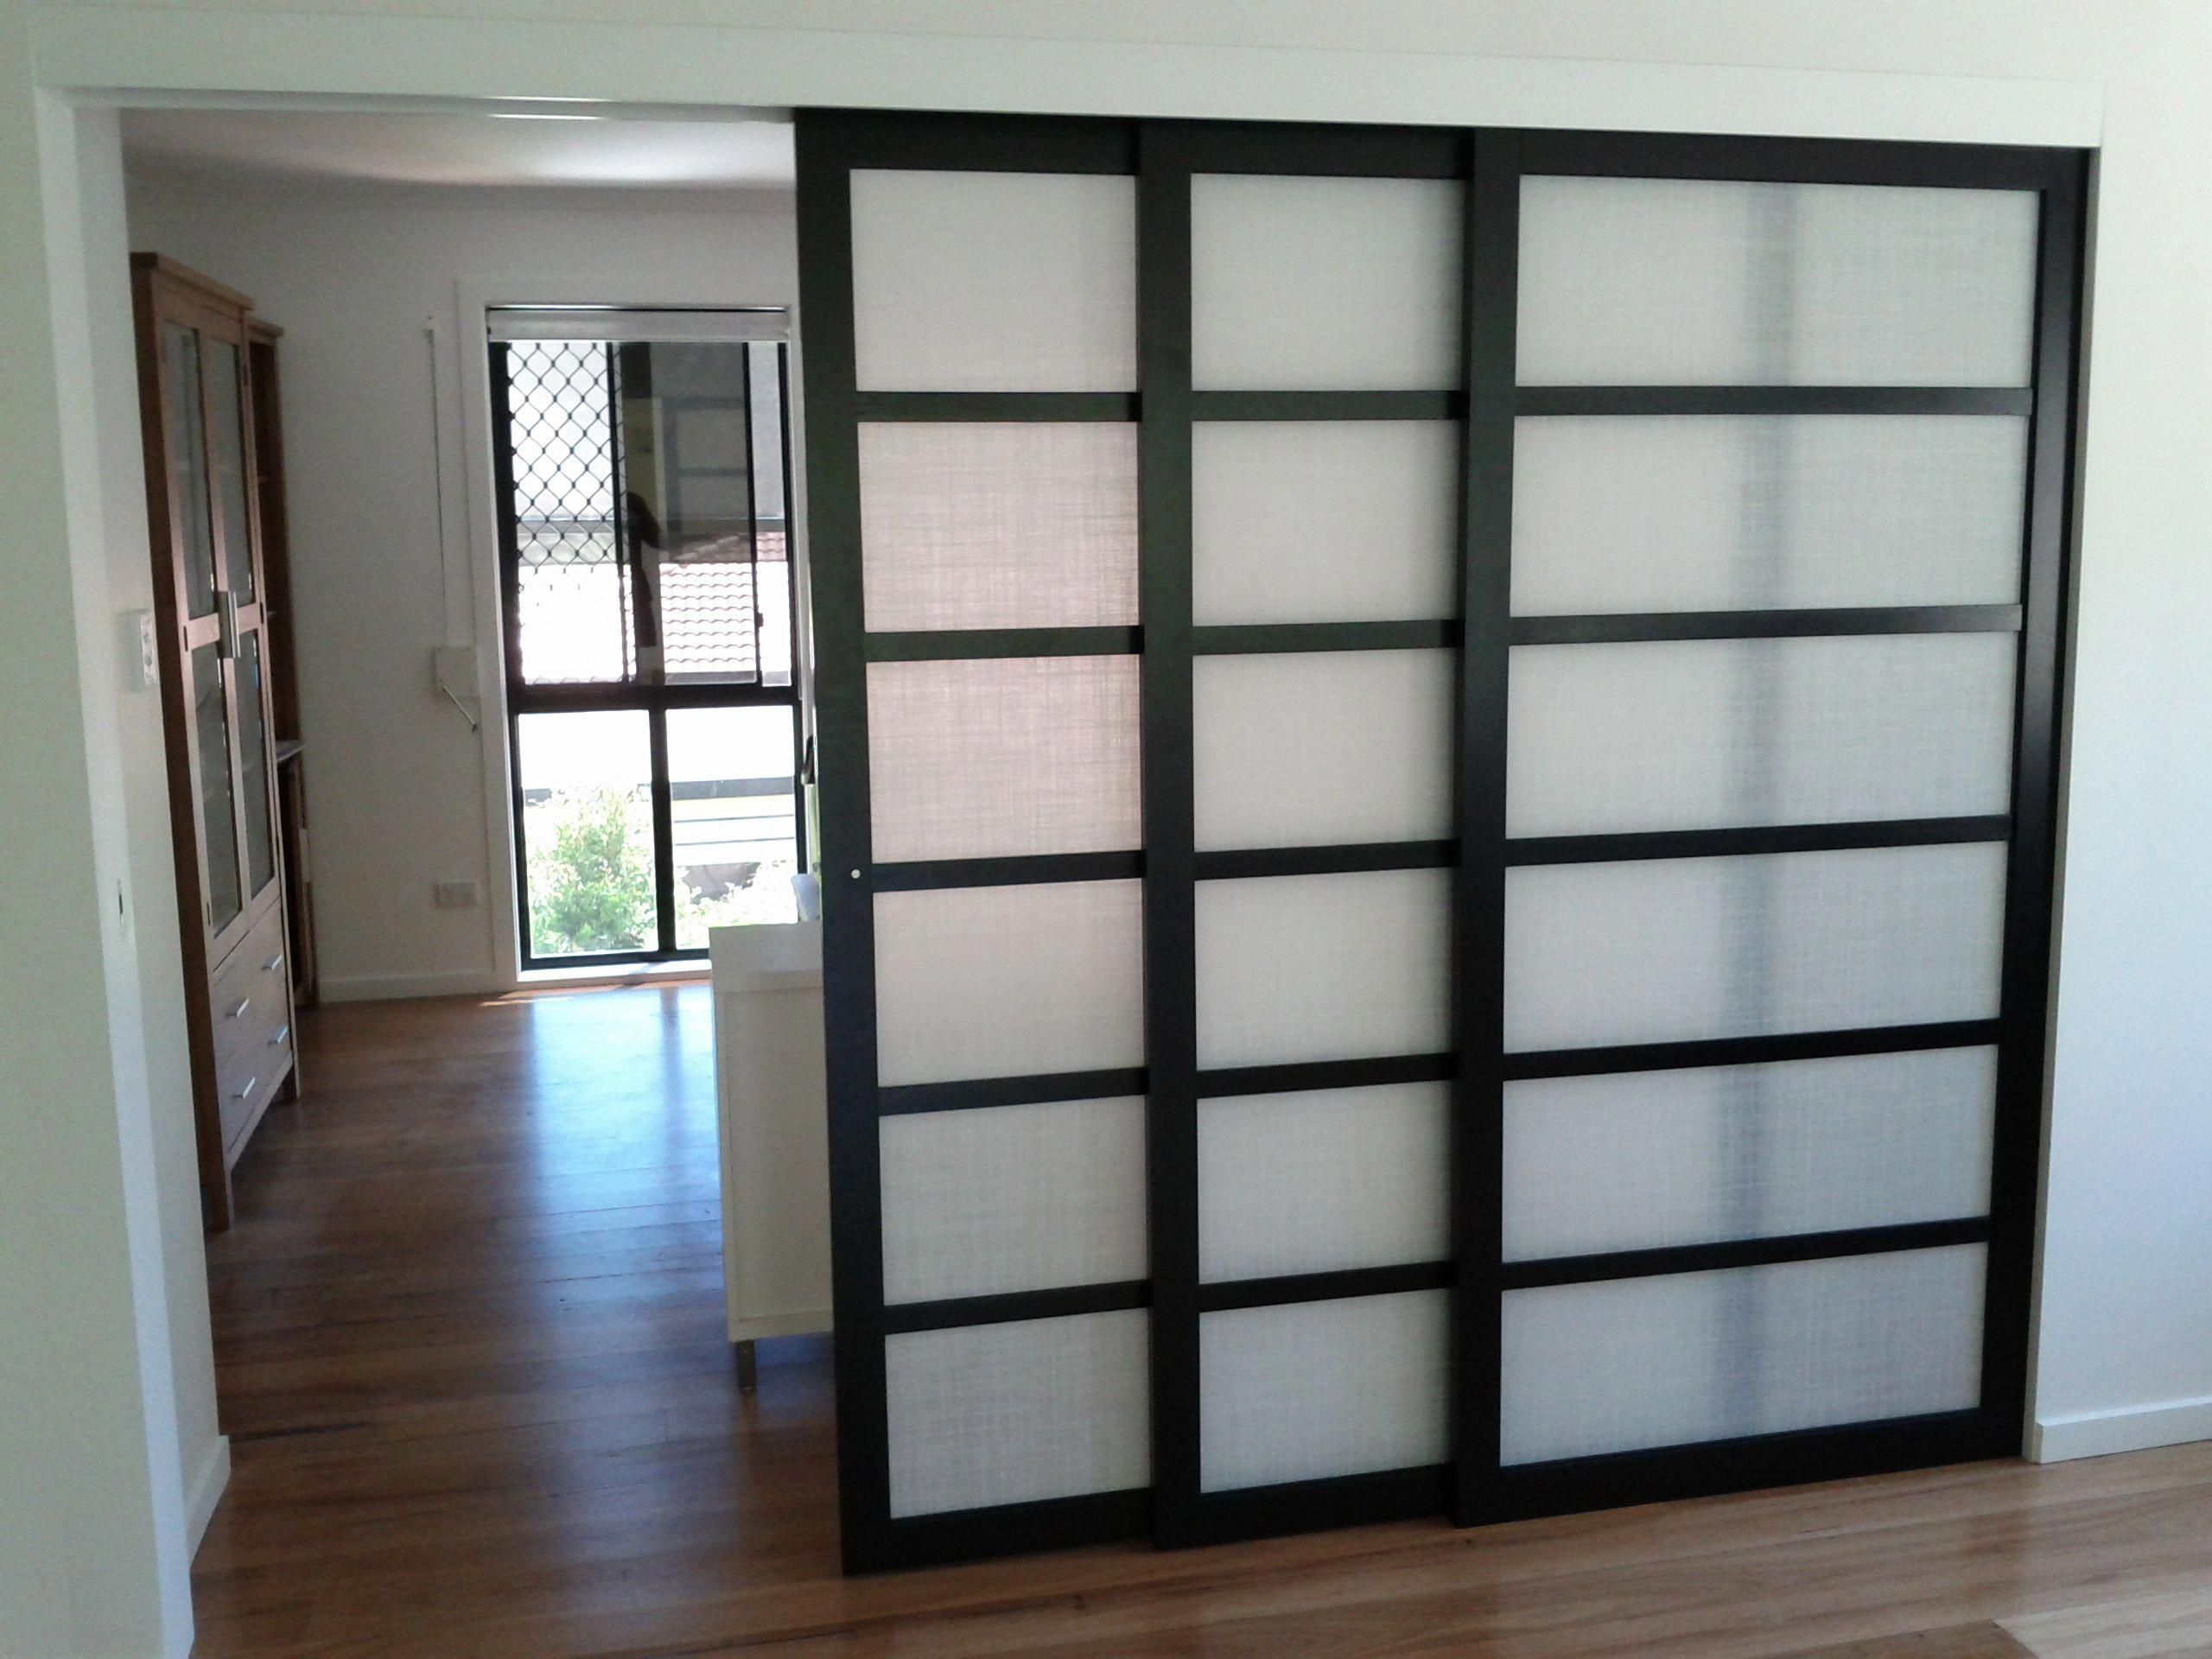 Architecture Well Suited Shoji Sliding Doors Japanese And Room Dividers Go To Com For Even More Room Divider Doors Sliding Door Room Dividers Ikea Room Divider